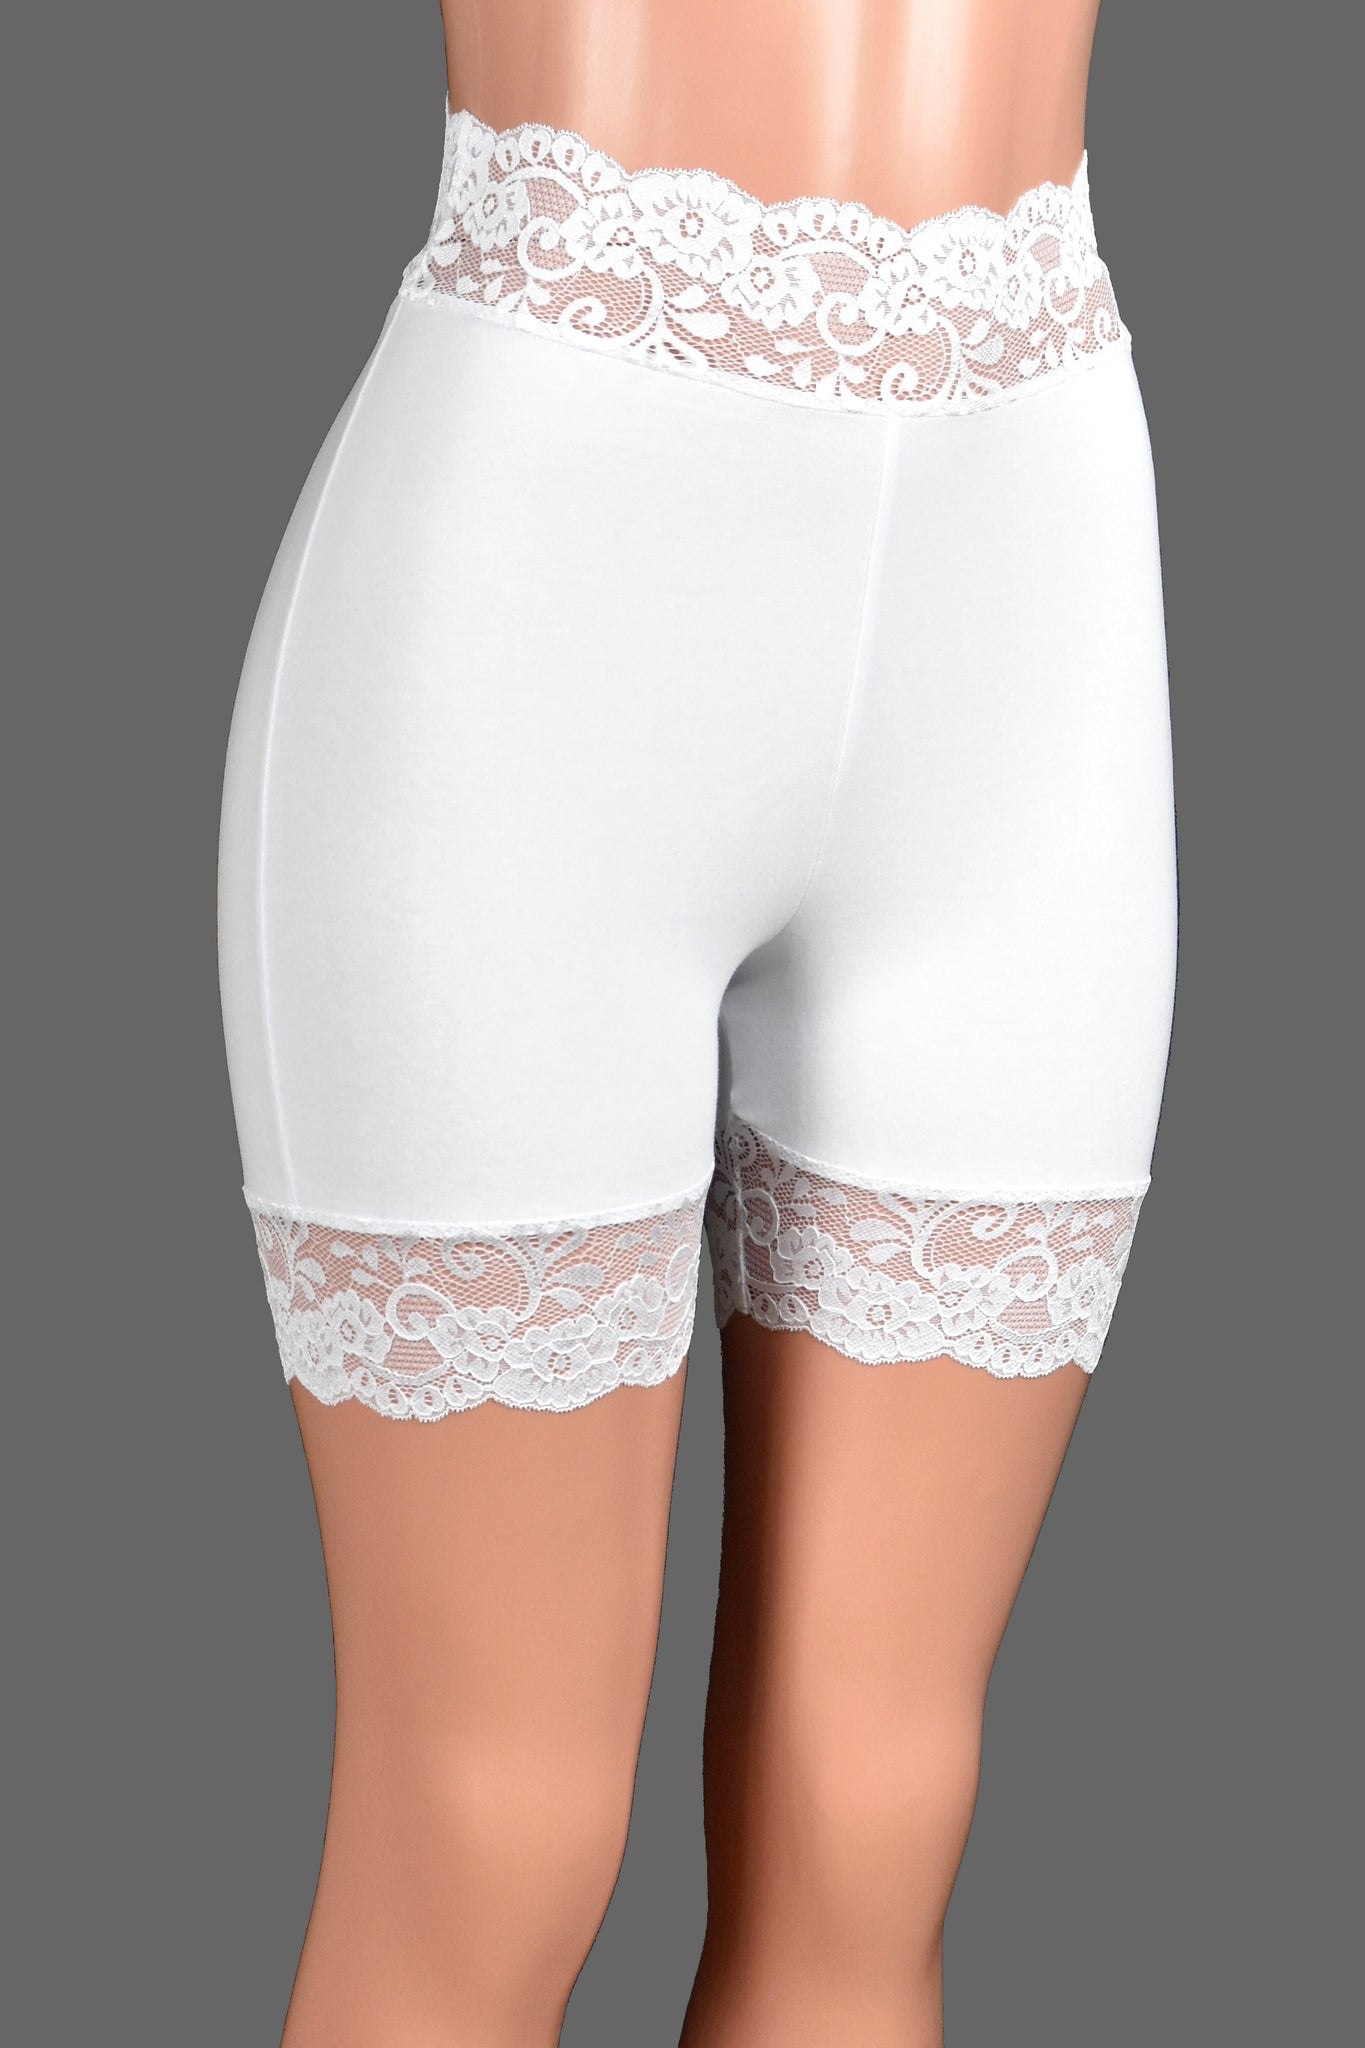 "High-Waisted 2.5"" Ivory or White Stretch Lace Shorts (5"" Inseam)"